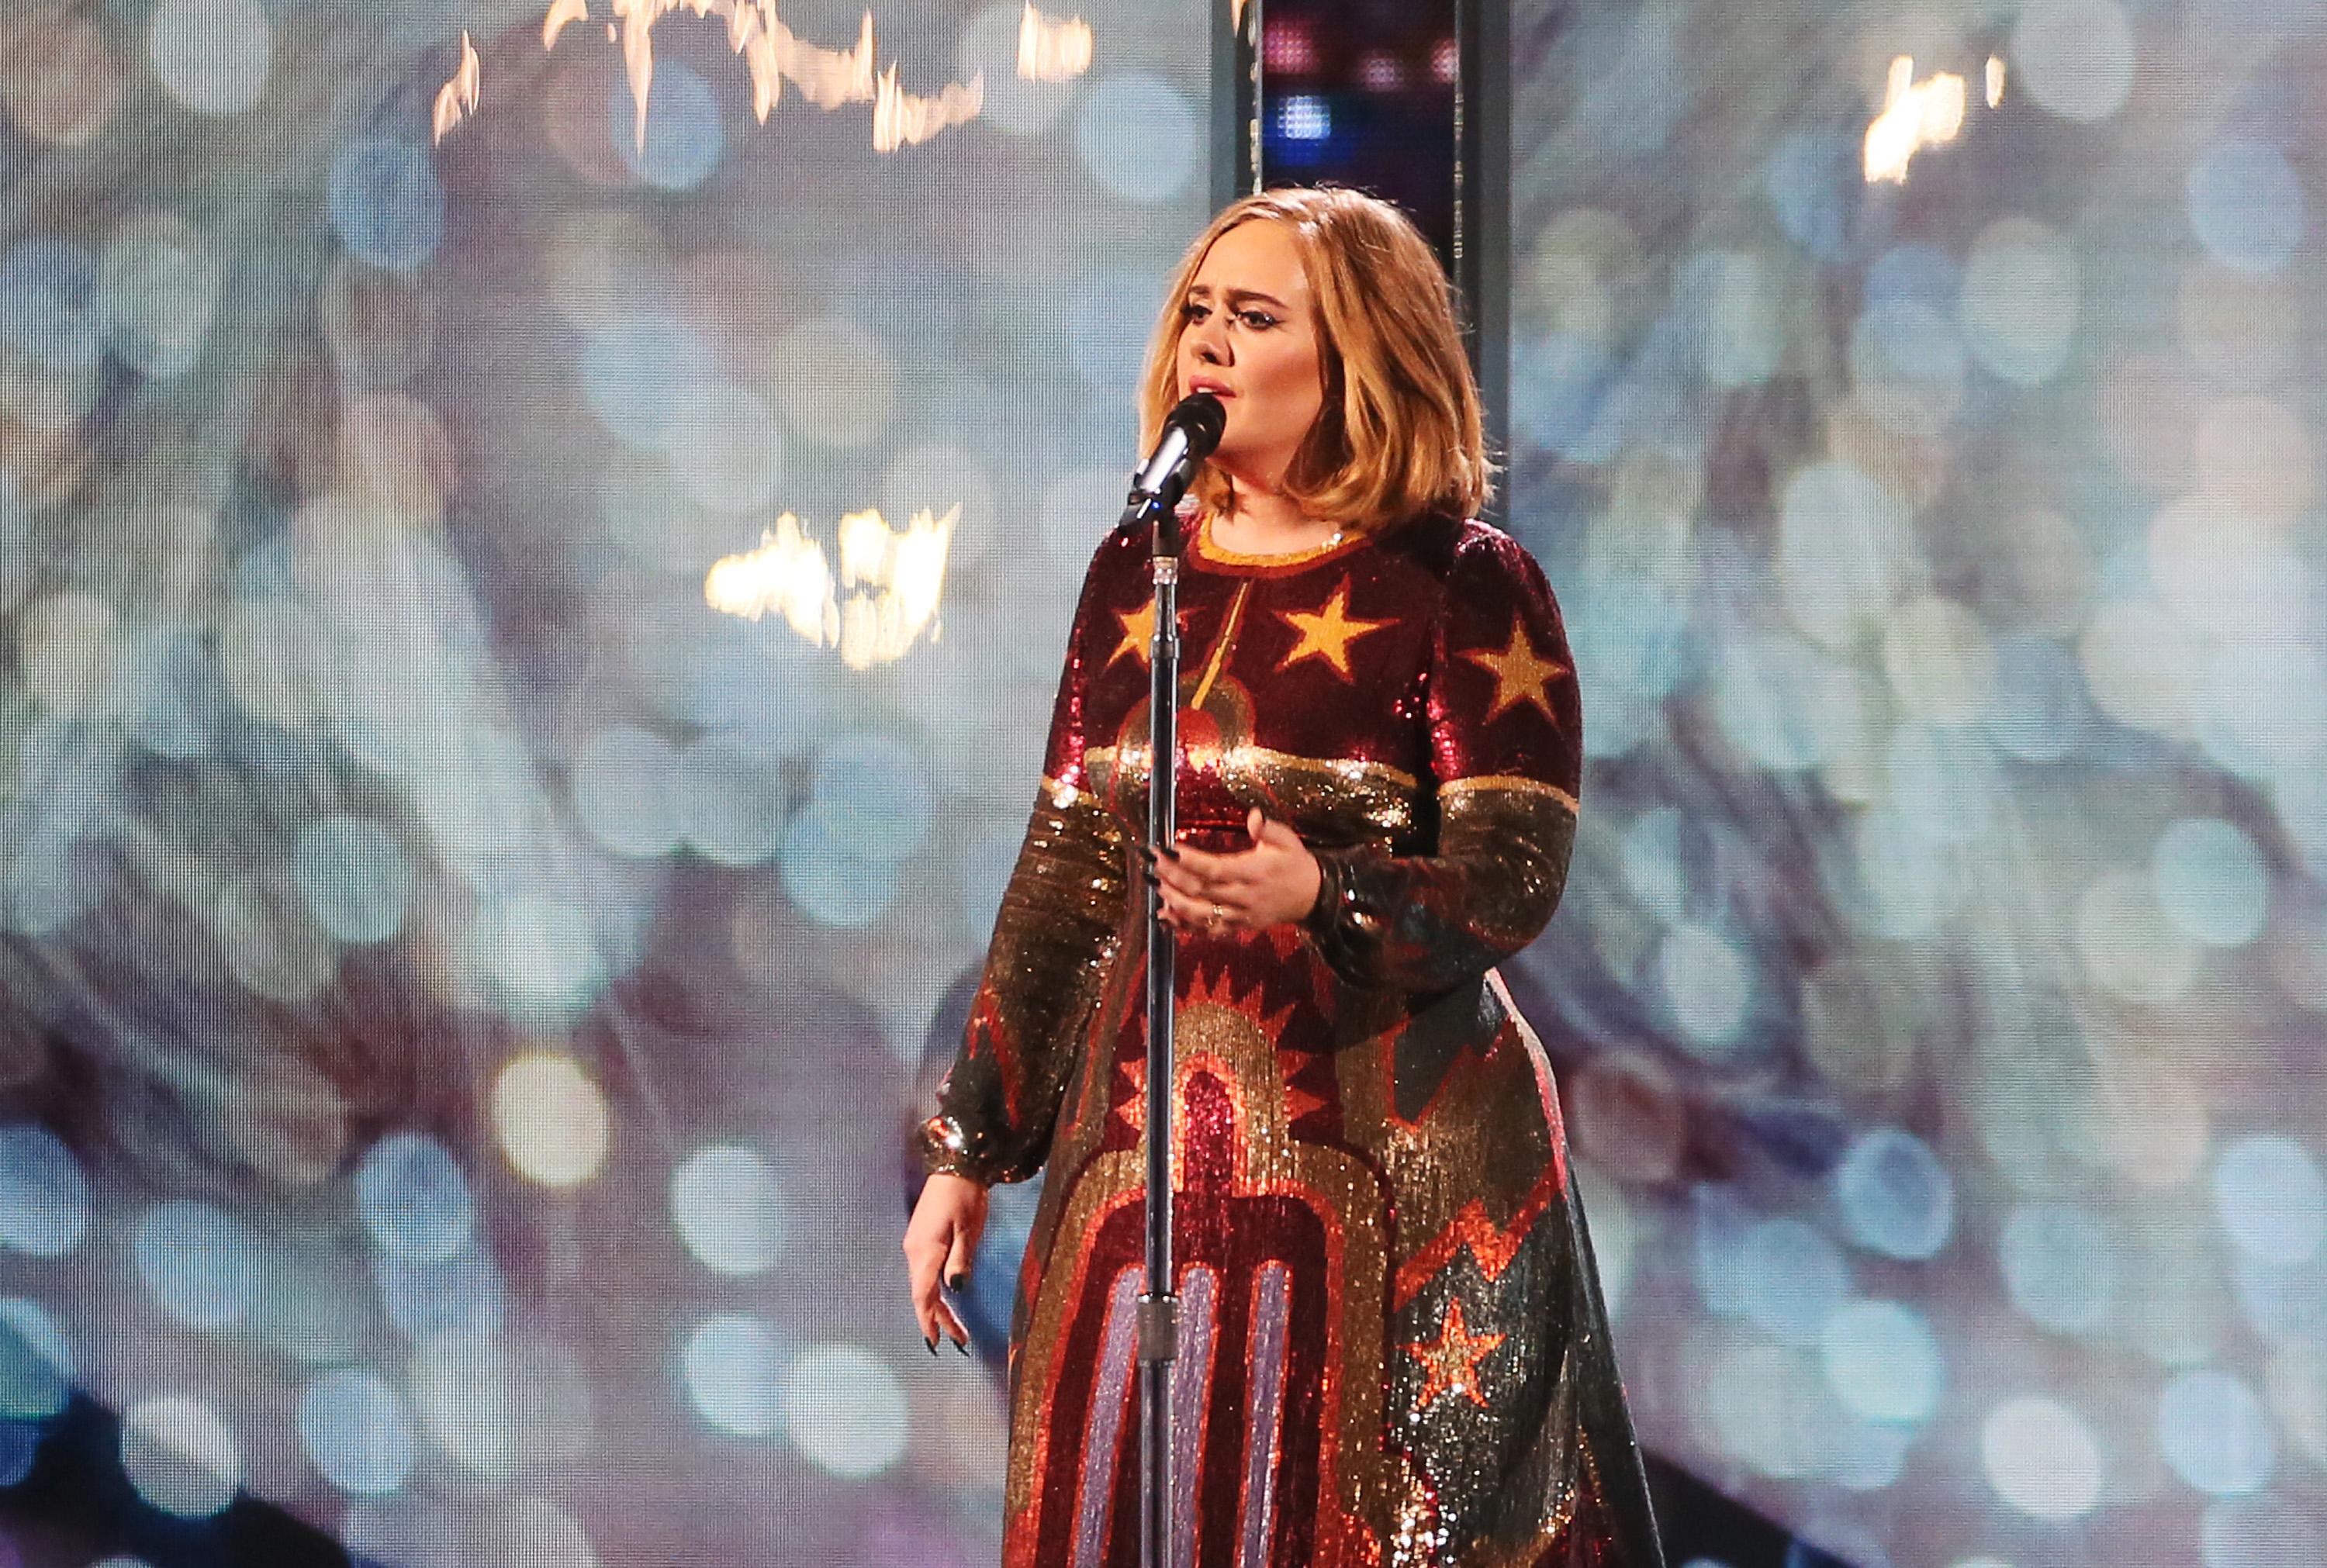 Adele performs at the BRIT Awards 2016 at The O2 Arena on February 24, 2016 in London, England.